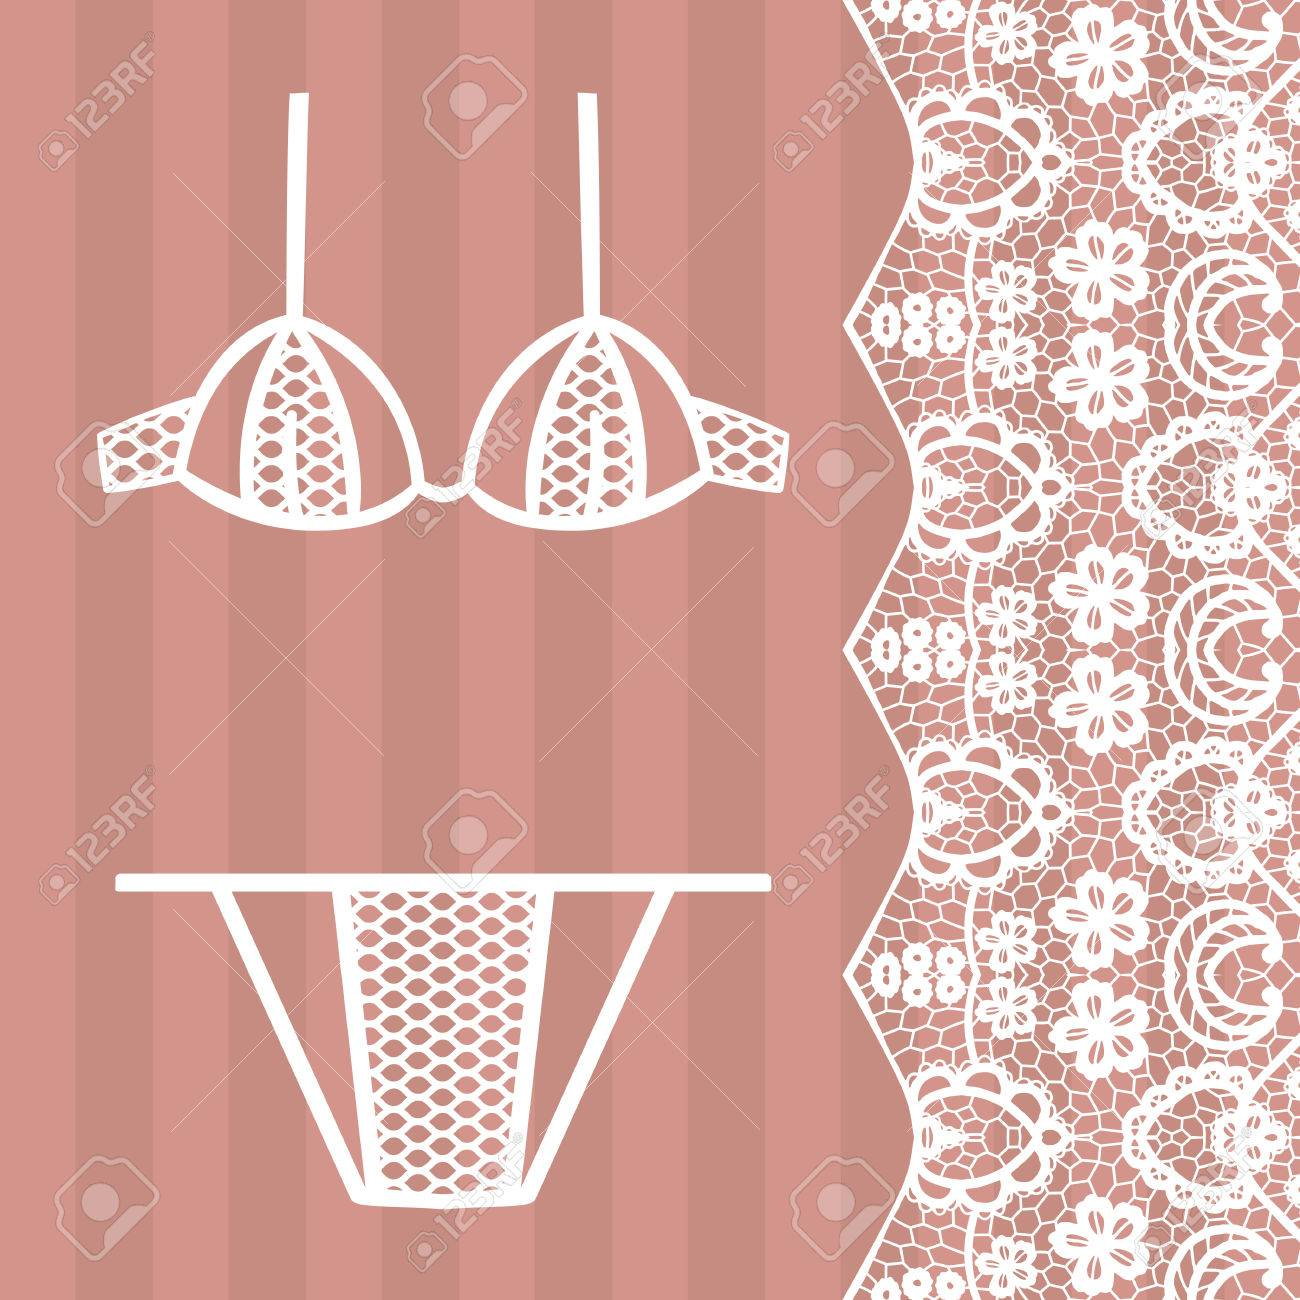 23828a4d32 Hand drawn lingerie. Panty and bra set. Vector illustration Stock Vector -  68697210